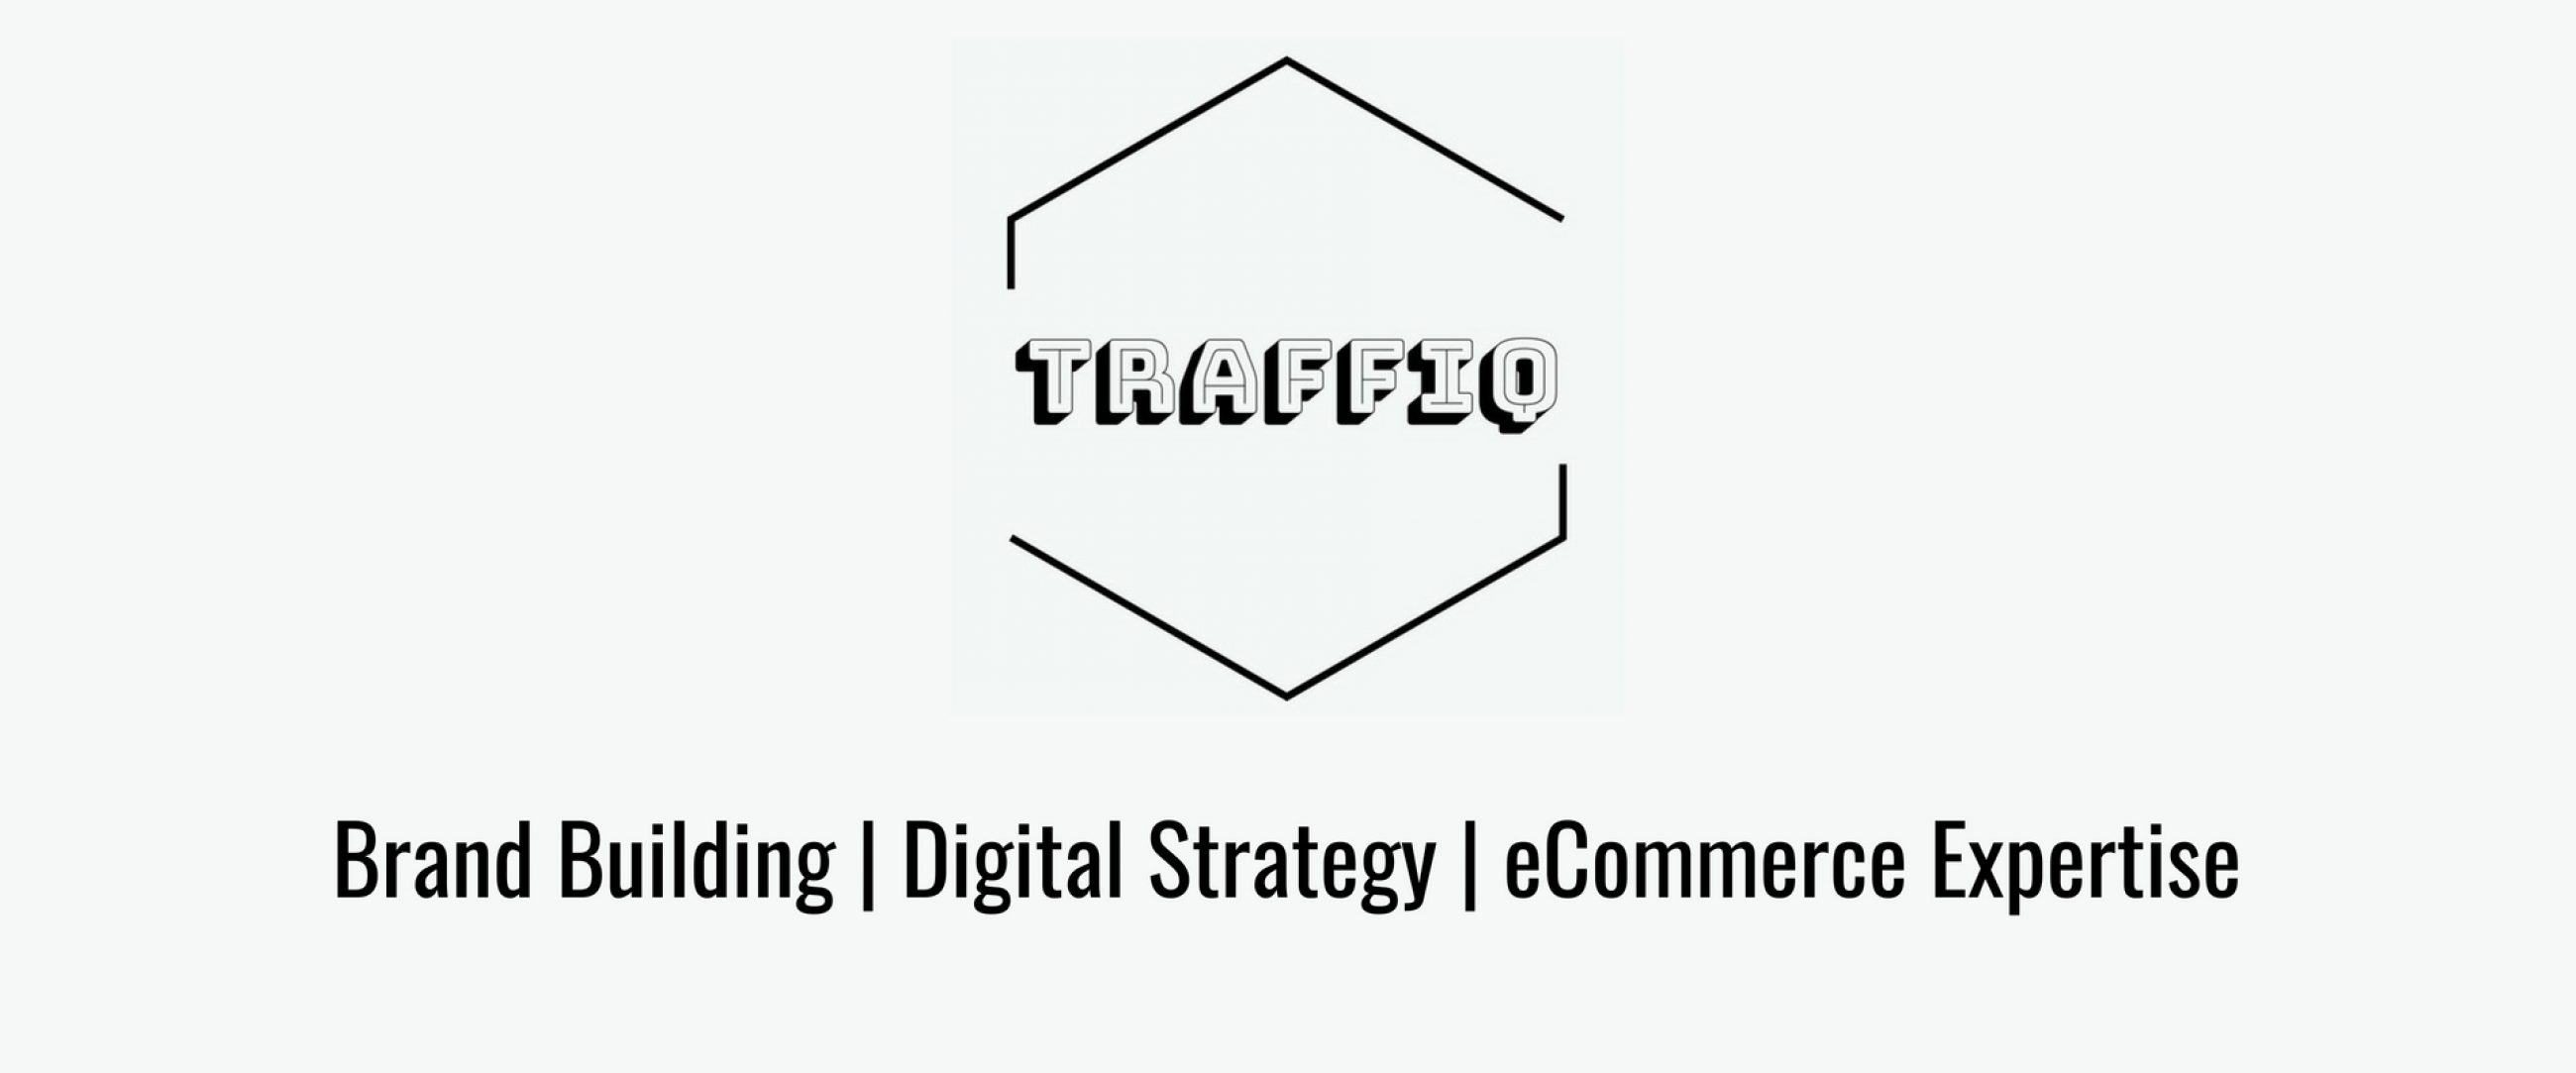 cropped-brand-building-digital-strategy-ecommerce-expertise-10.jpg